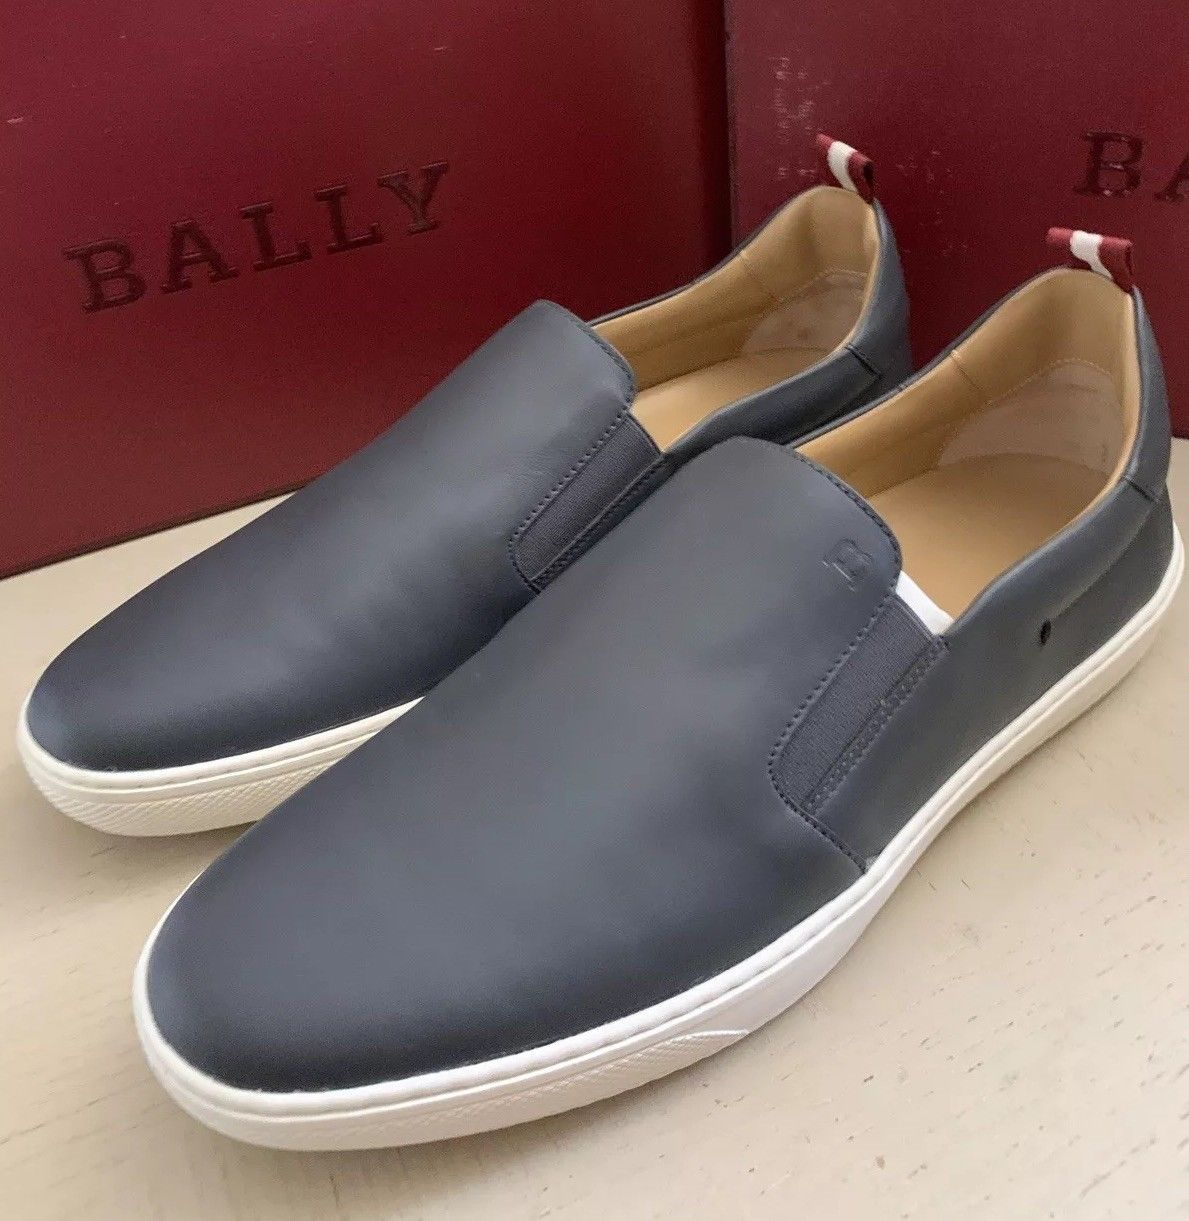 New $510 Bally Men Orniel Leather Sneakers Shoes Color DK Gray 9 US Switzerland